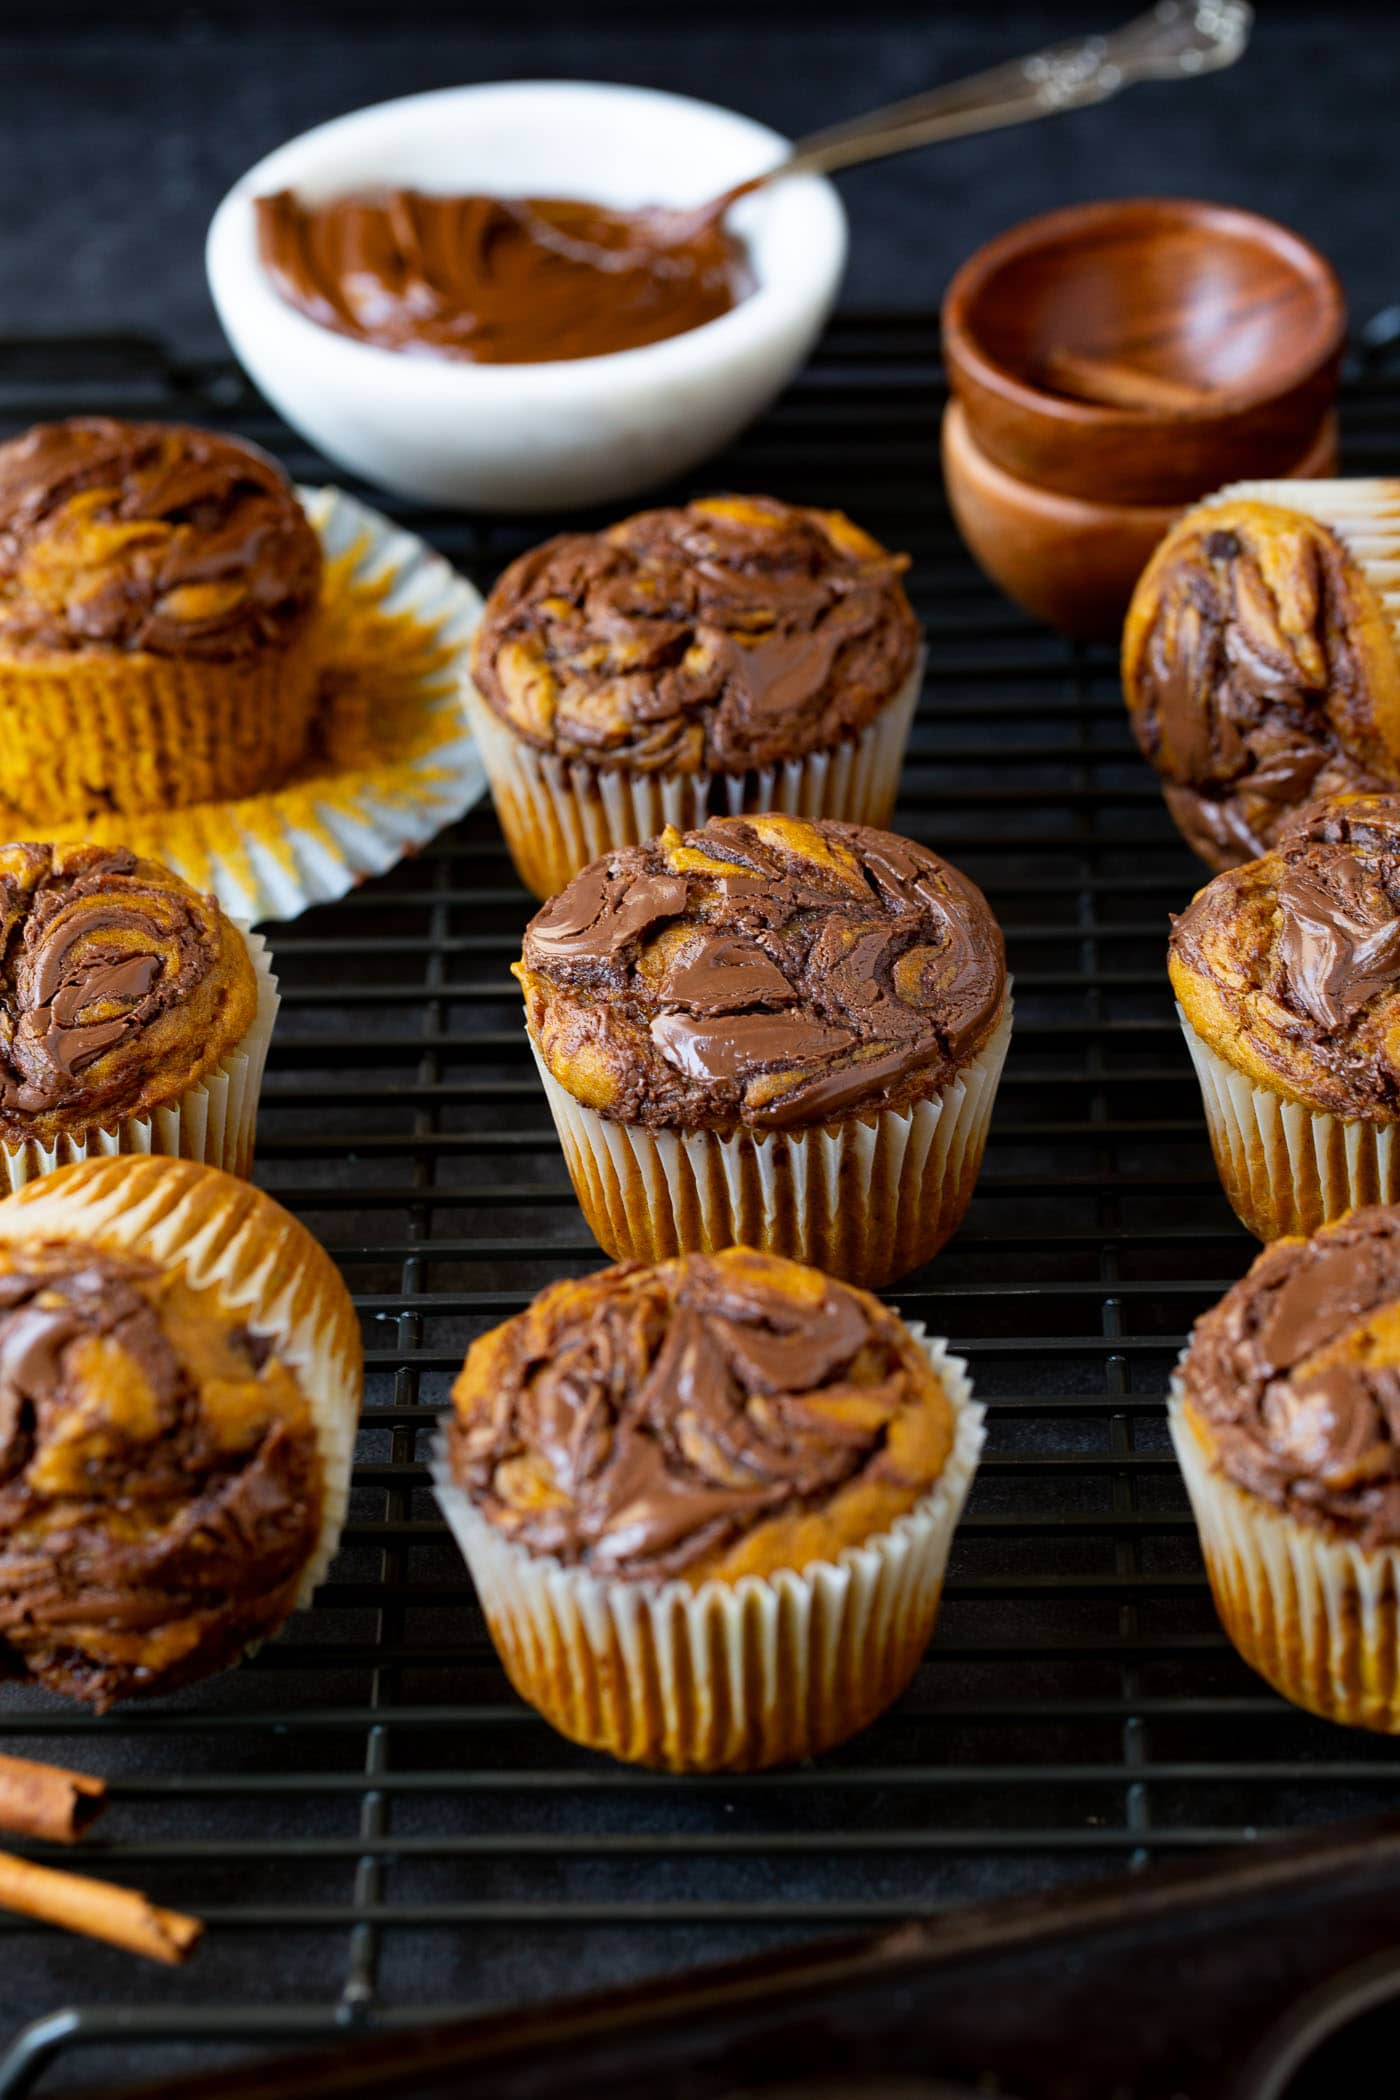 ten Nutella swirled pumpkin muffins. The paper liner has been peeled back on one of the muffins, and a small bowl of Nutella is in the background.